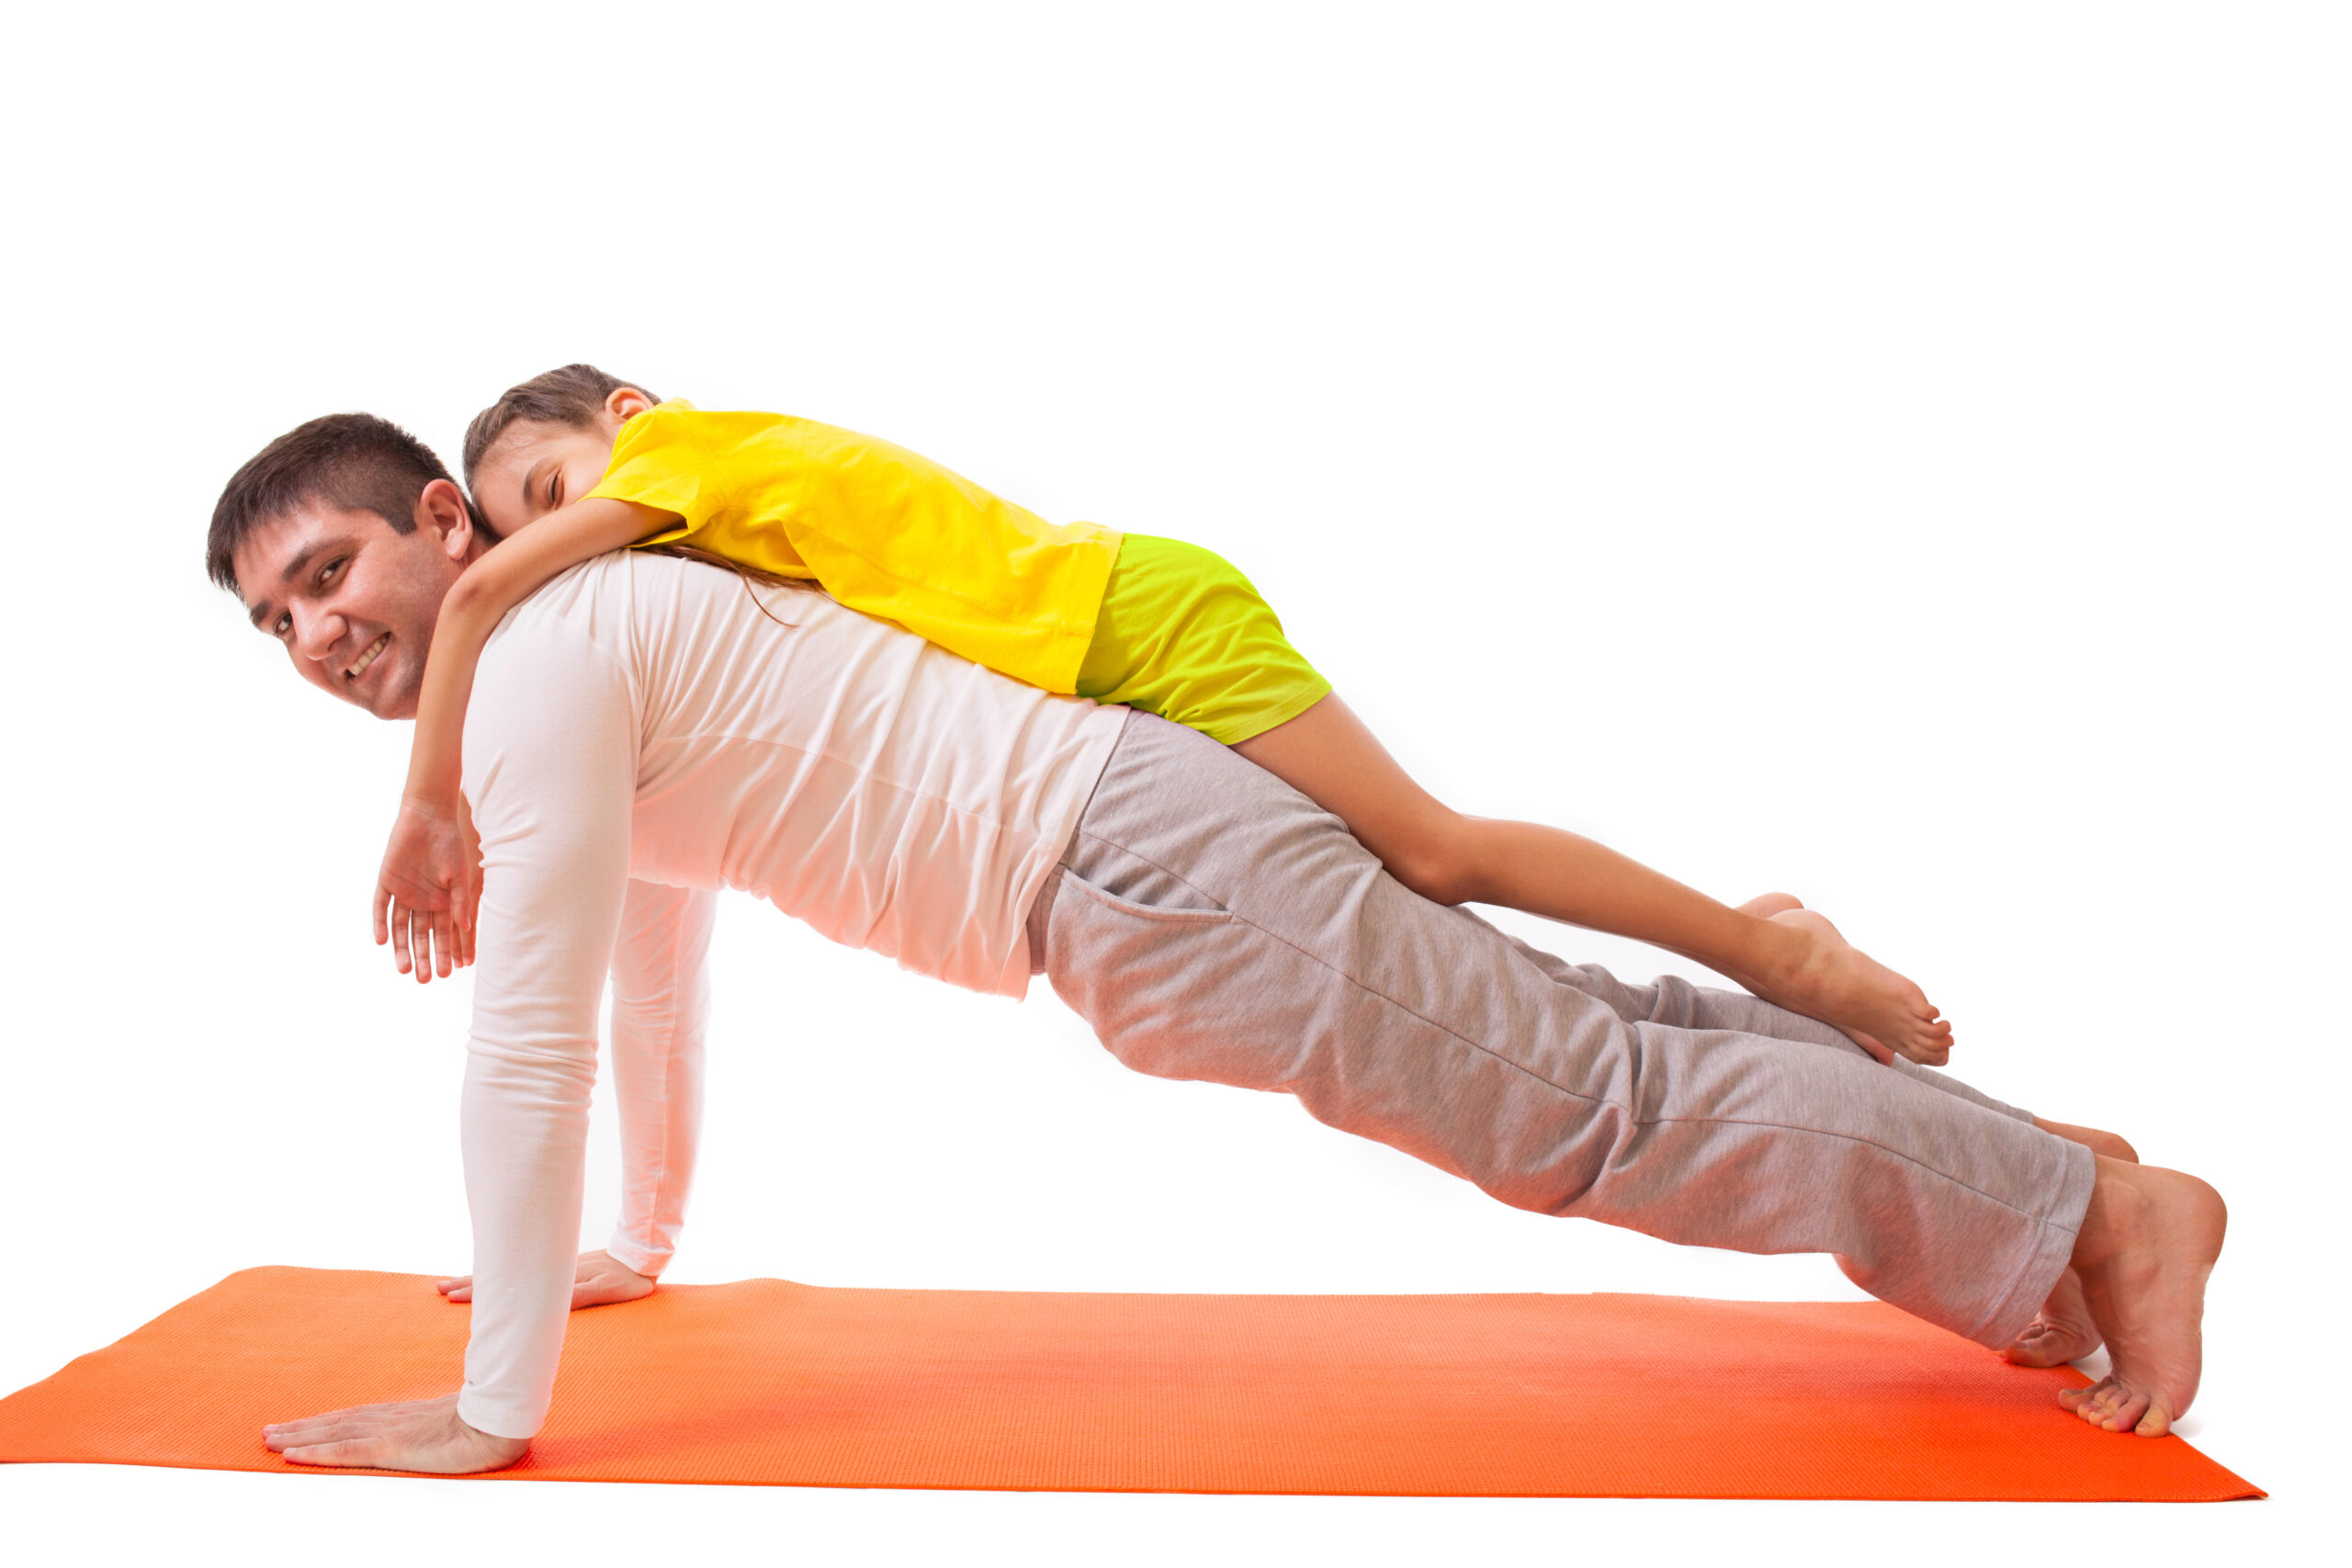 partner yoga game with kids at home